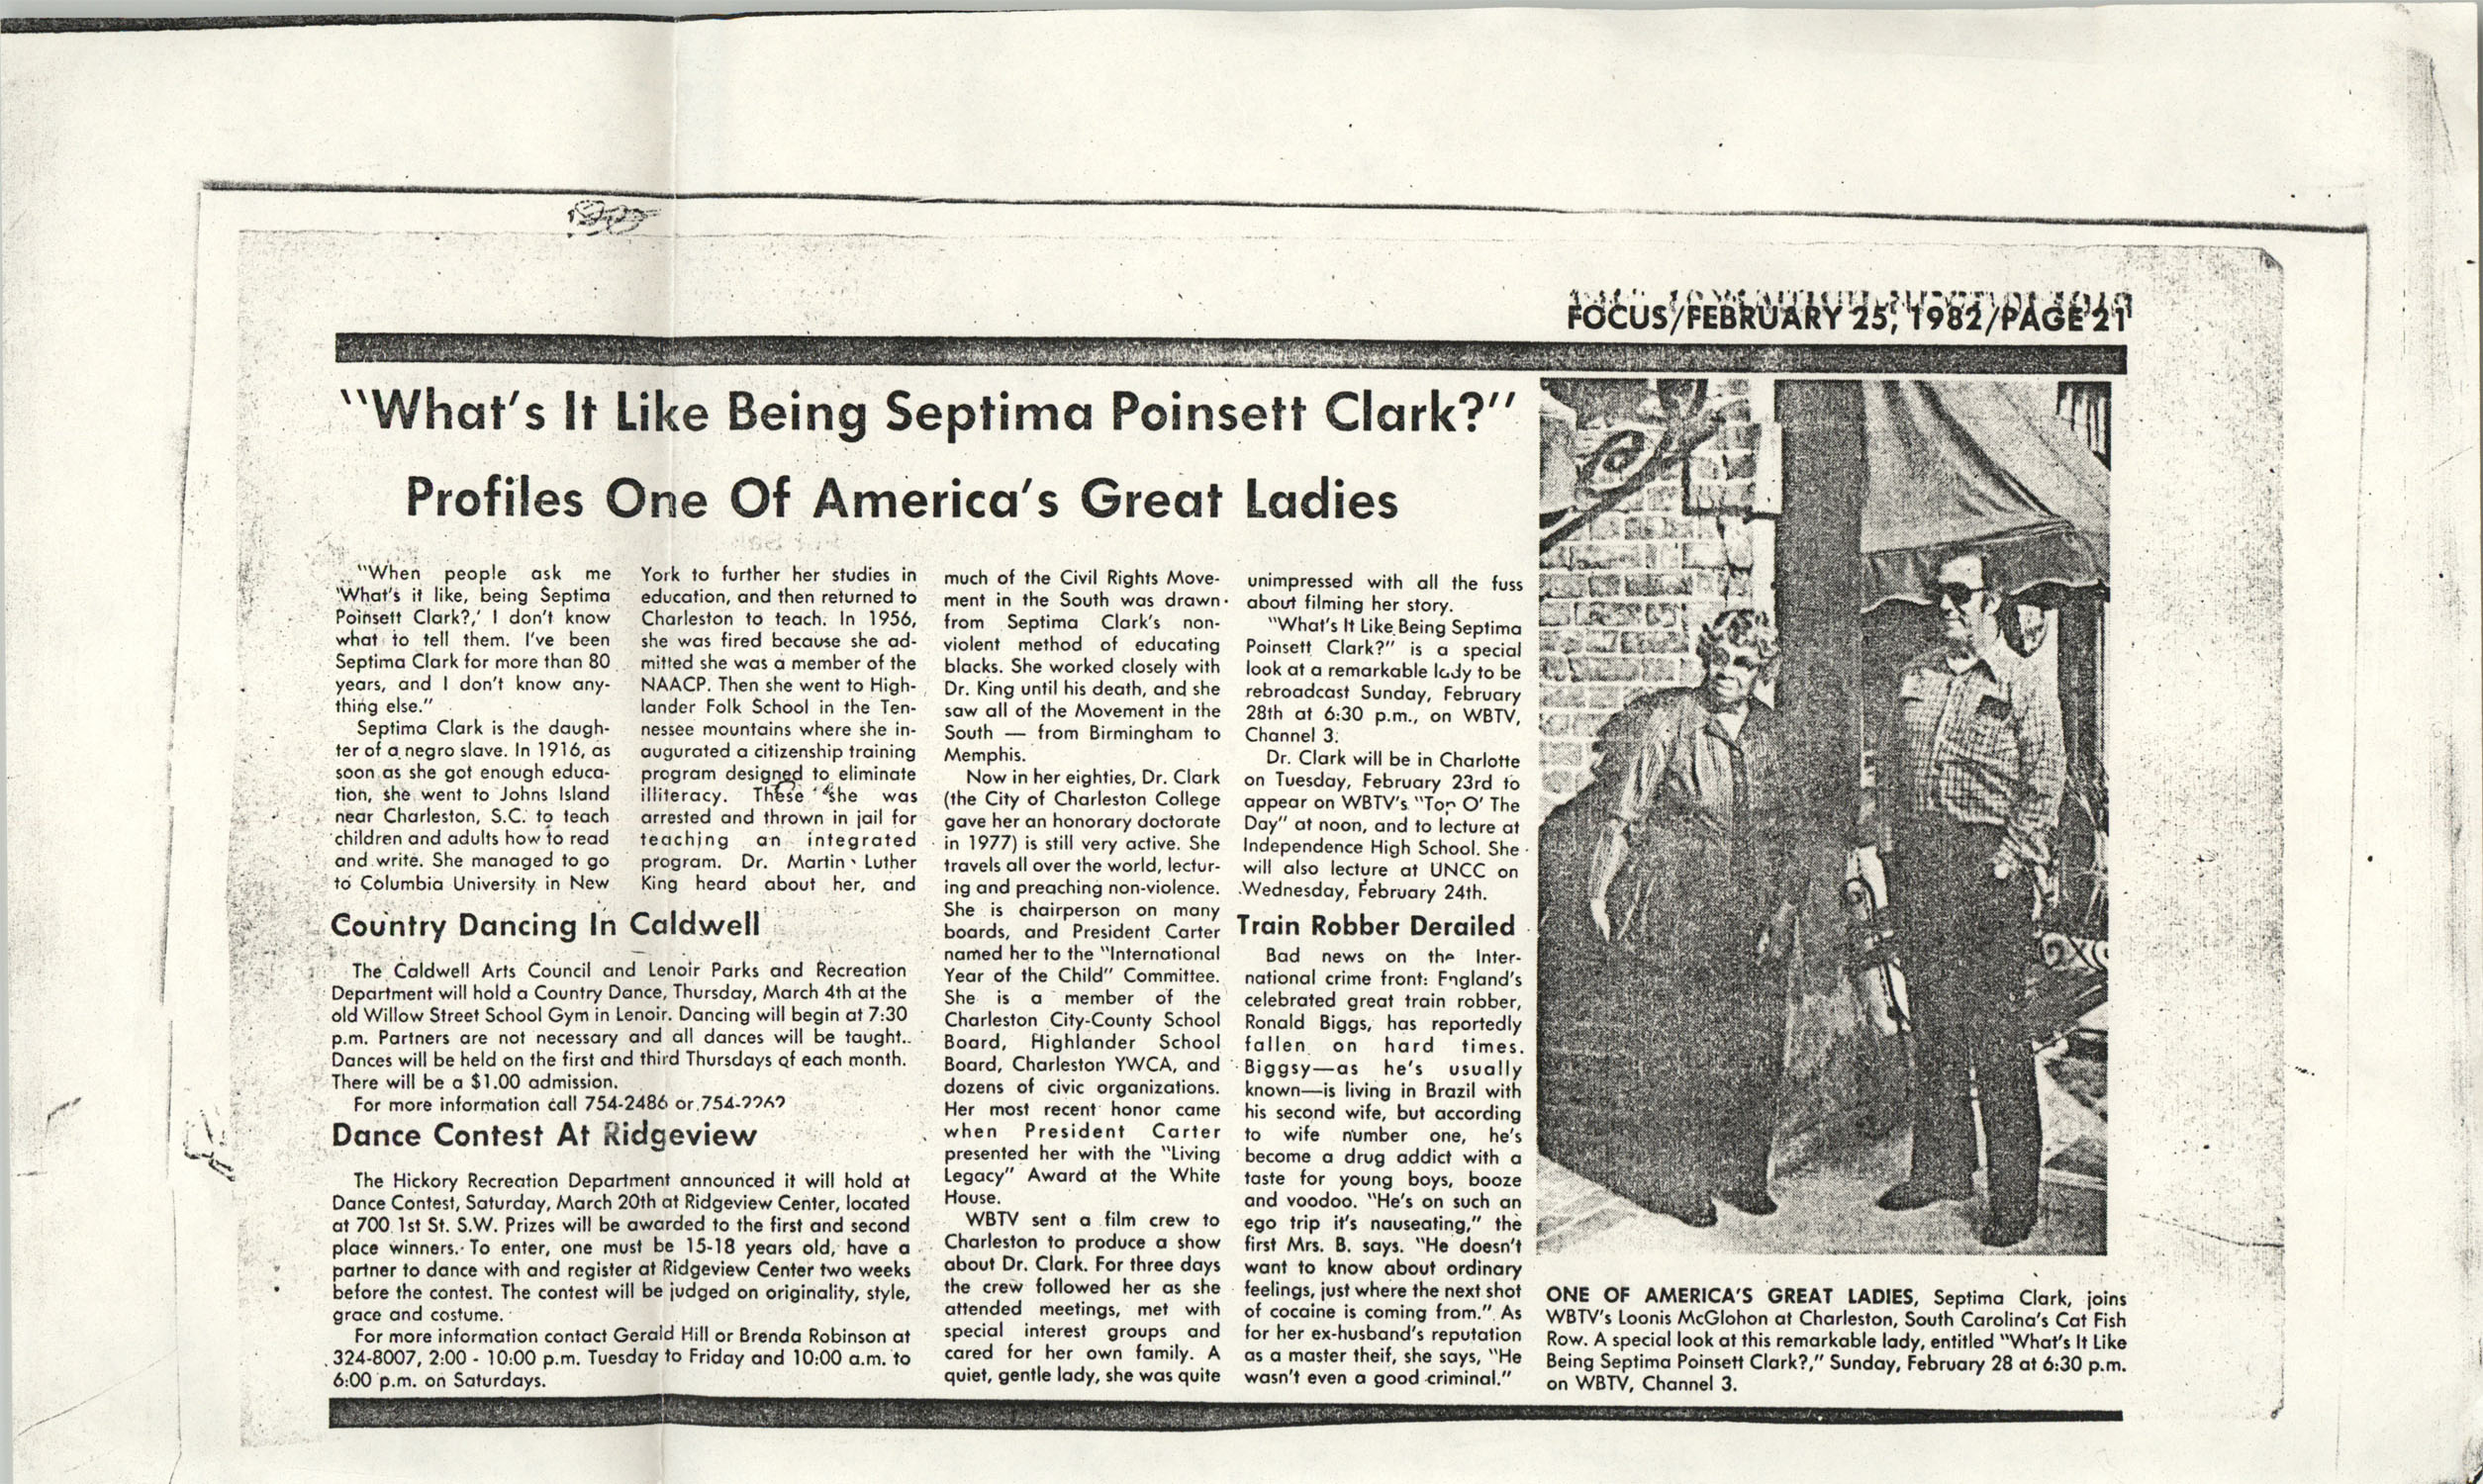 Newspaper Article, February 25, 1982